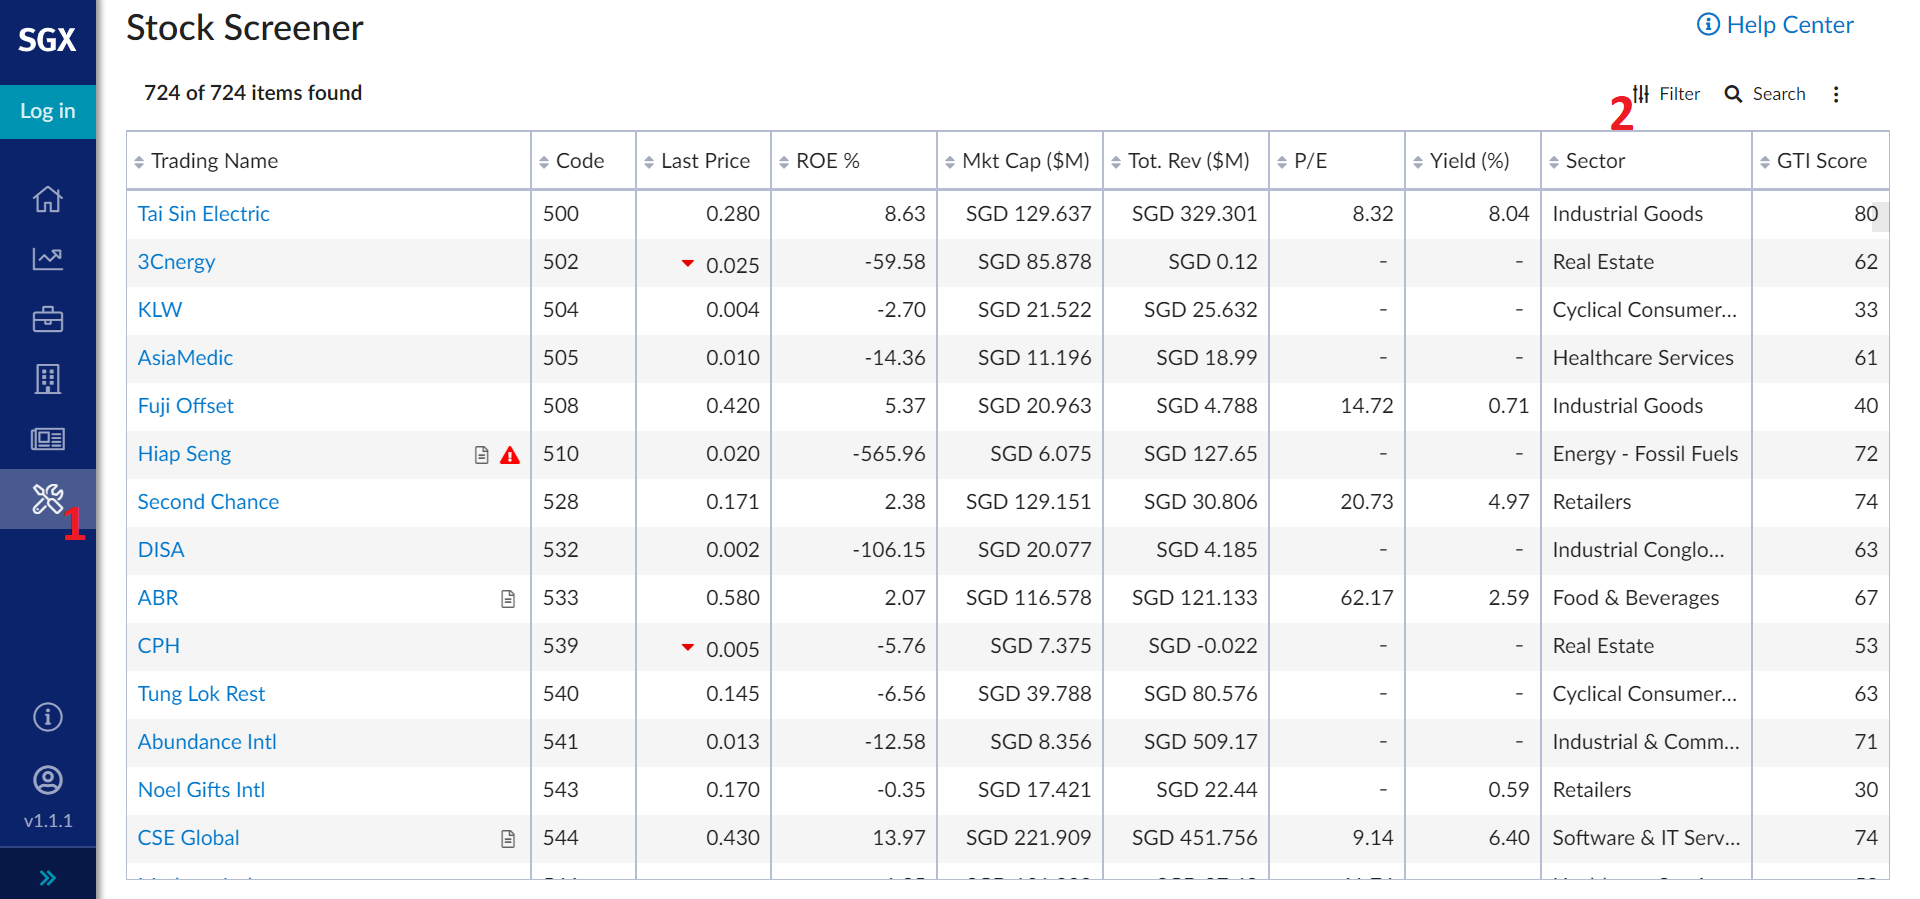 Stocks Screener SGX Portal